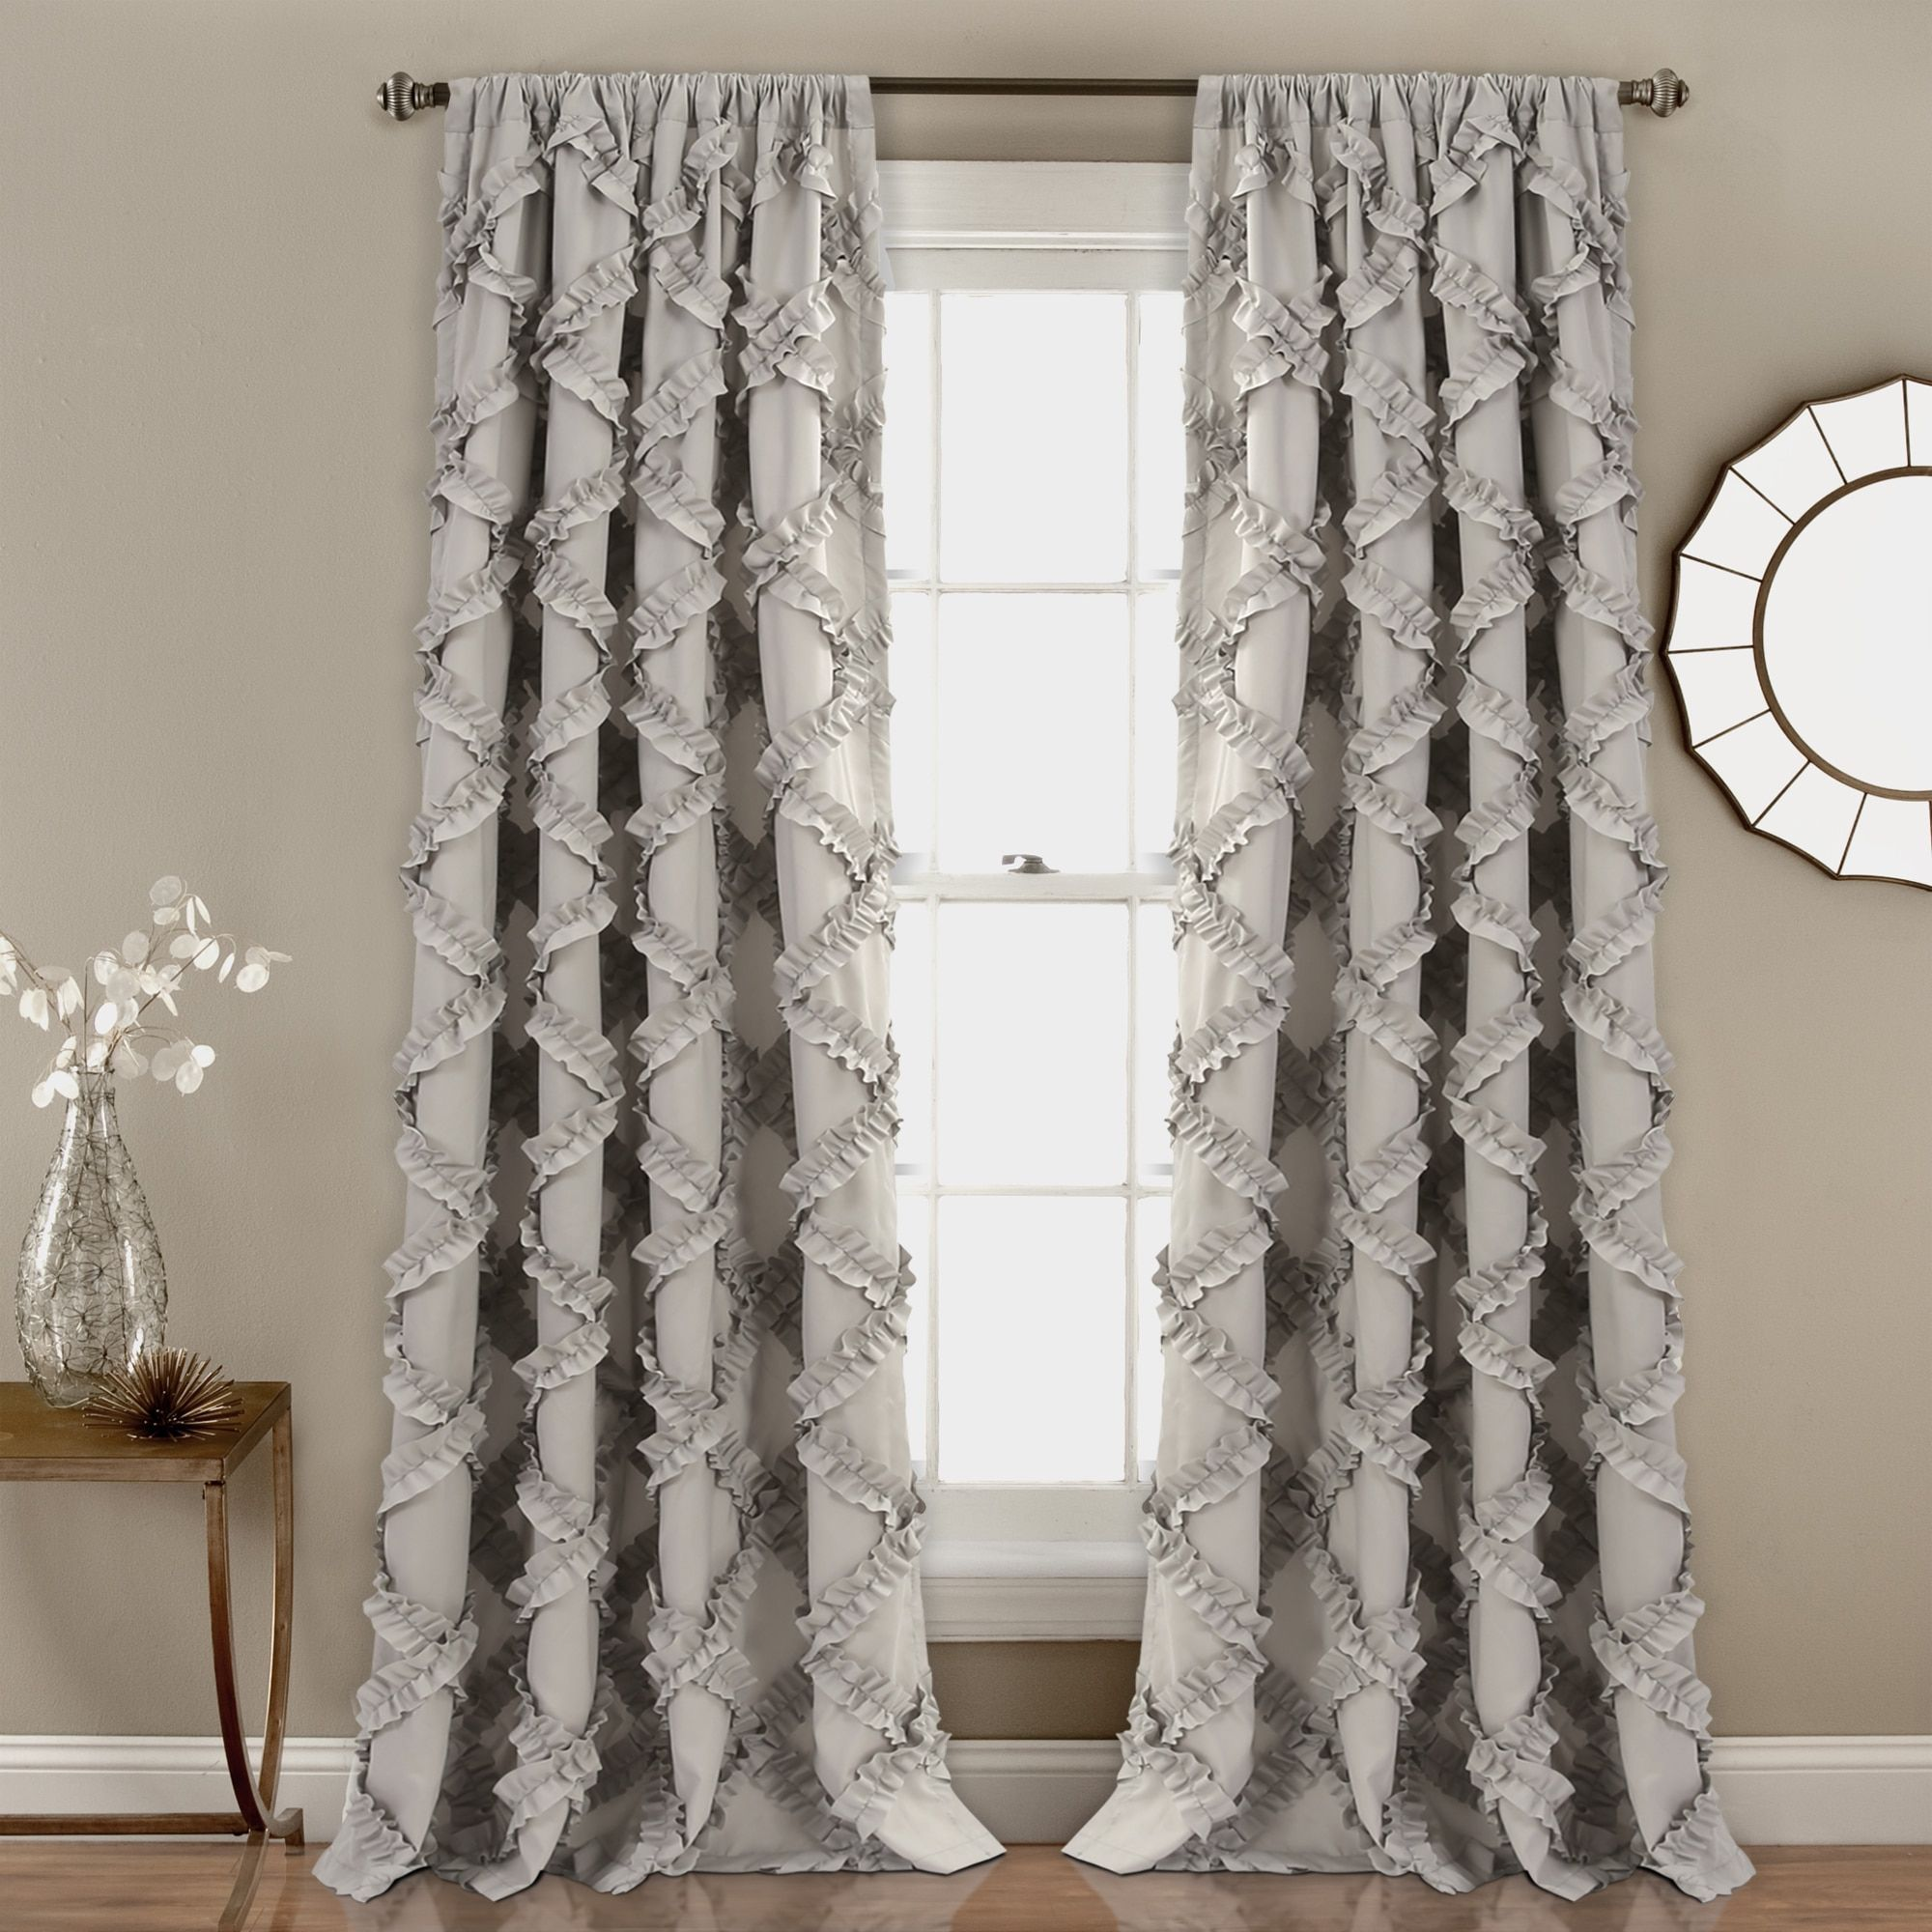 drapery barns treatments and comfy with pottery curtains endearing fill drapes interior for colors rod draperies window beautiful linen rods barn curtain